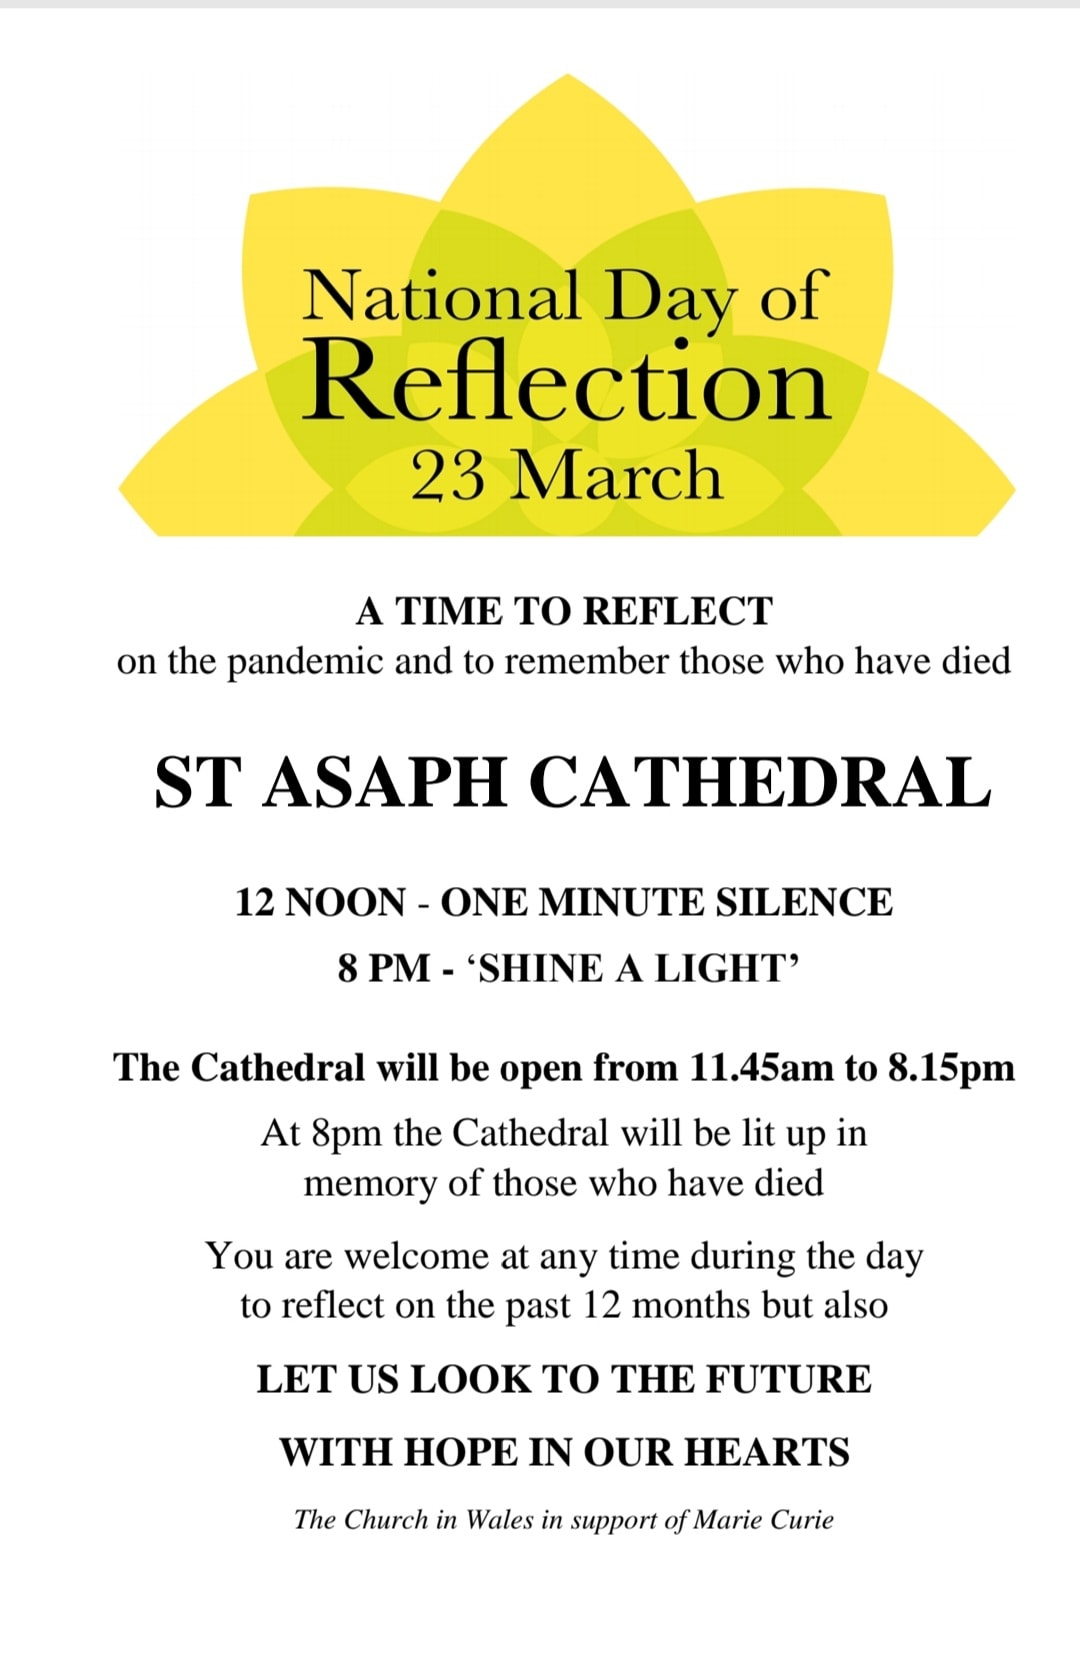 "White background with image of Sun behind text. Text reads: ""National Day of Reflection 23rd March. A Time To Reflect on the pandemic and to remember those who have died. ST ASAPH CATHEDRAL. 12 NOON - 1 Minute Silence. 8 PM. ""Shine A Light."" The Cathedral will be open from 11:45 AM to 8:15 PM. At 8 PMthe cathedral will be lit up in memory of those who have died.  You are welcome at any time of the day to come and reflecton the last 12 months but also let us look in to the future with hope in our hearts.  The Church in Wales in support of Marie Curie."